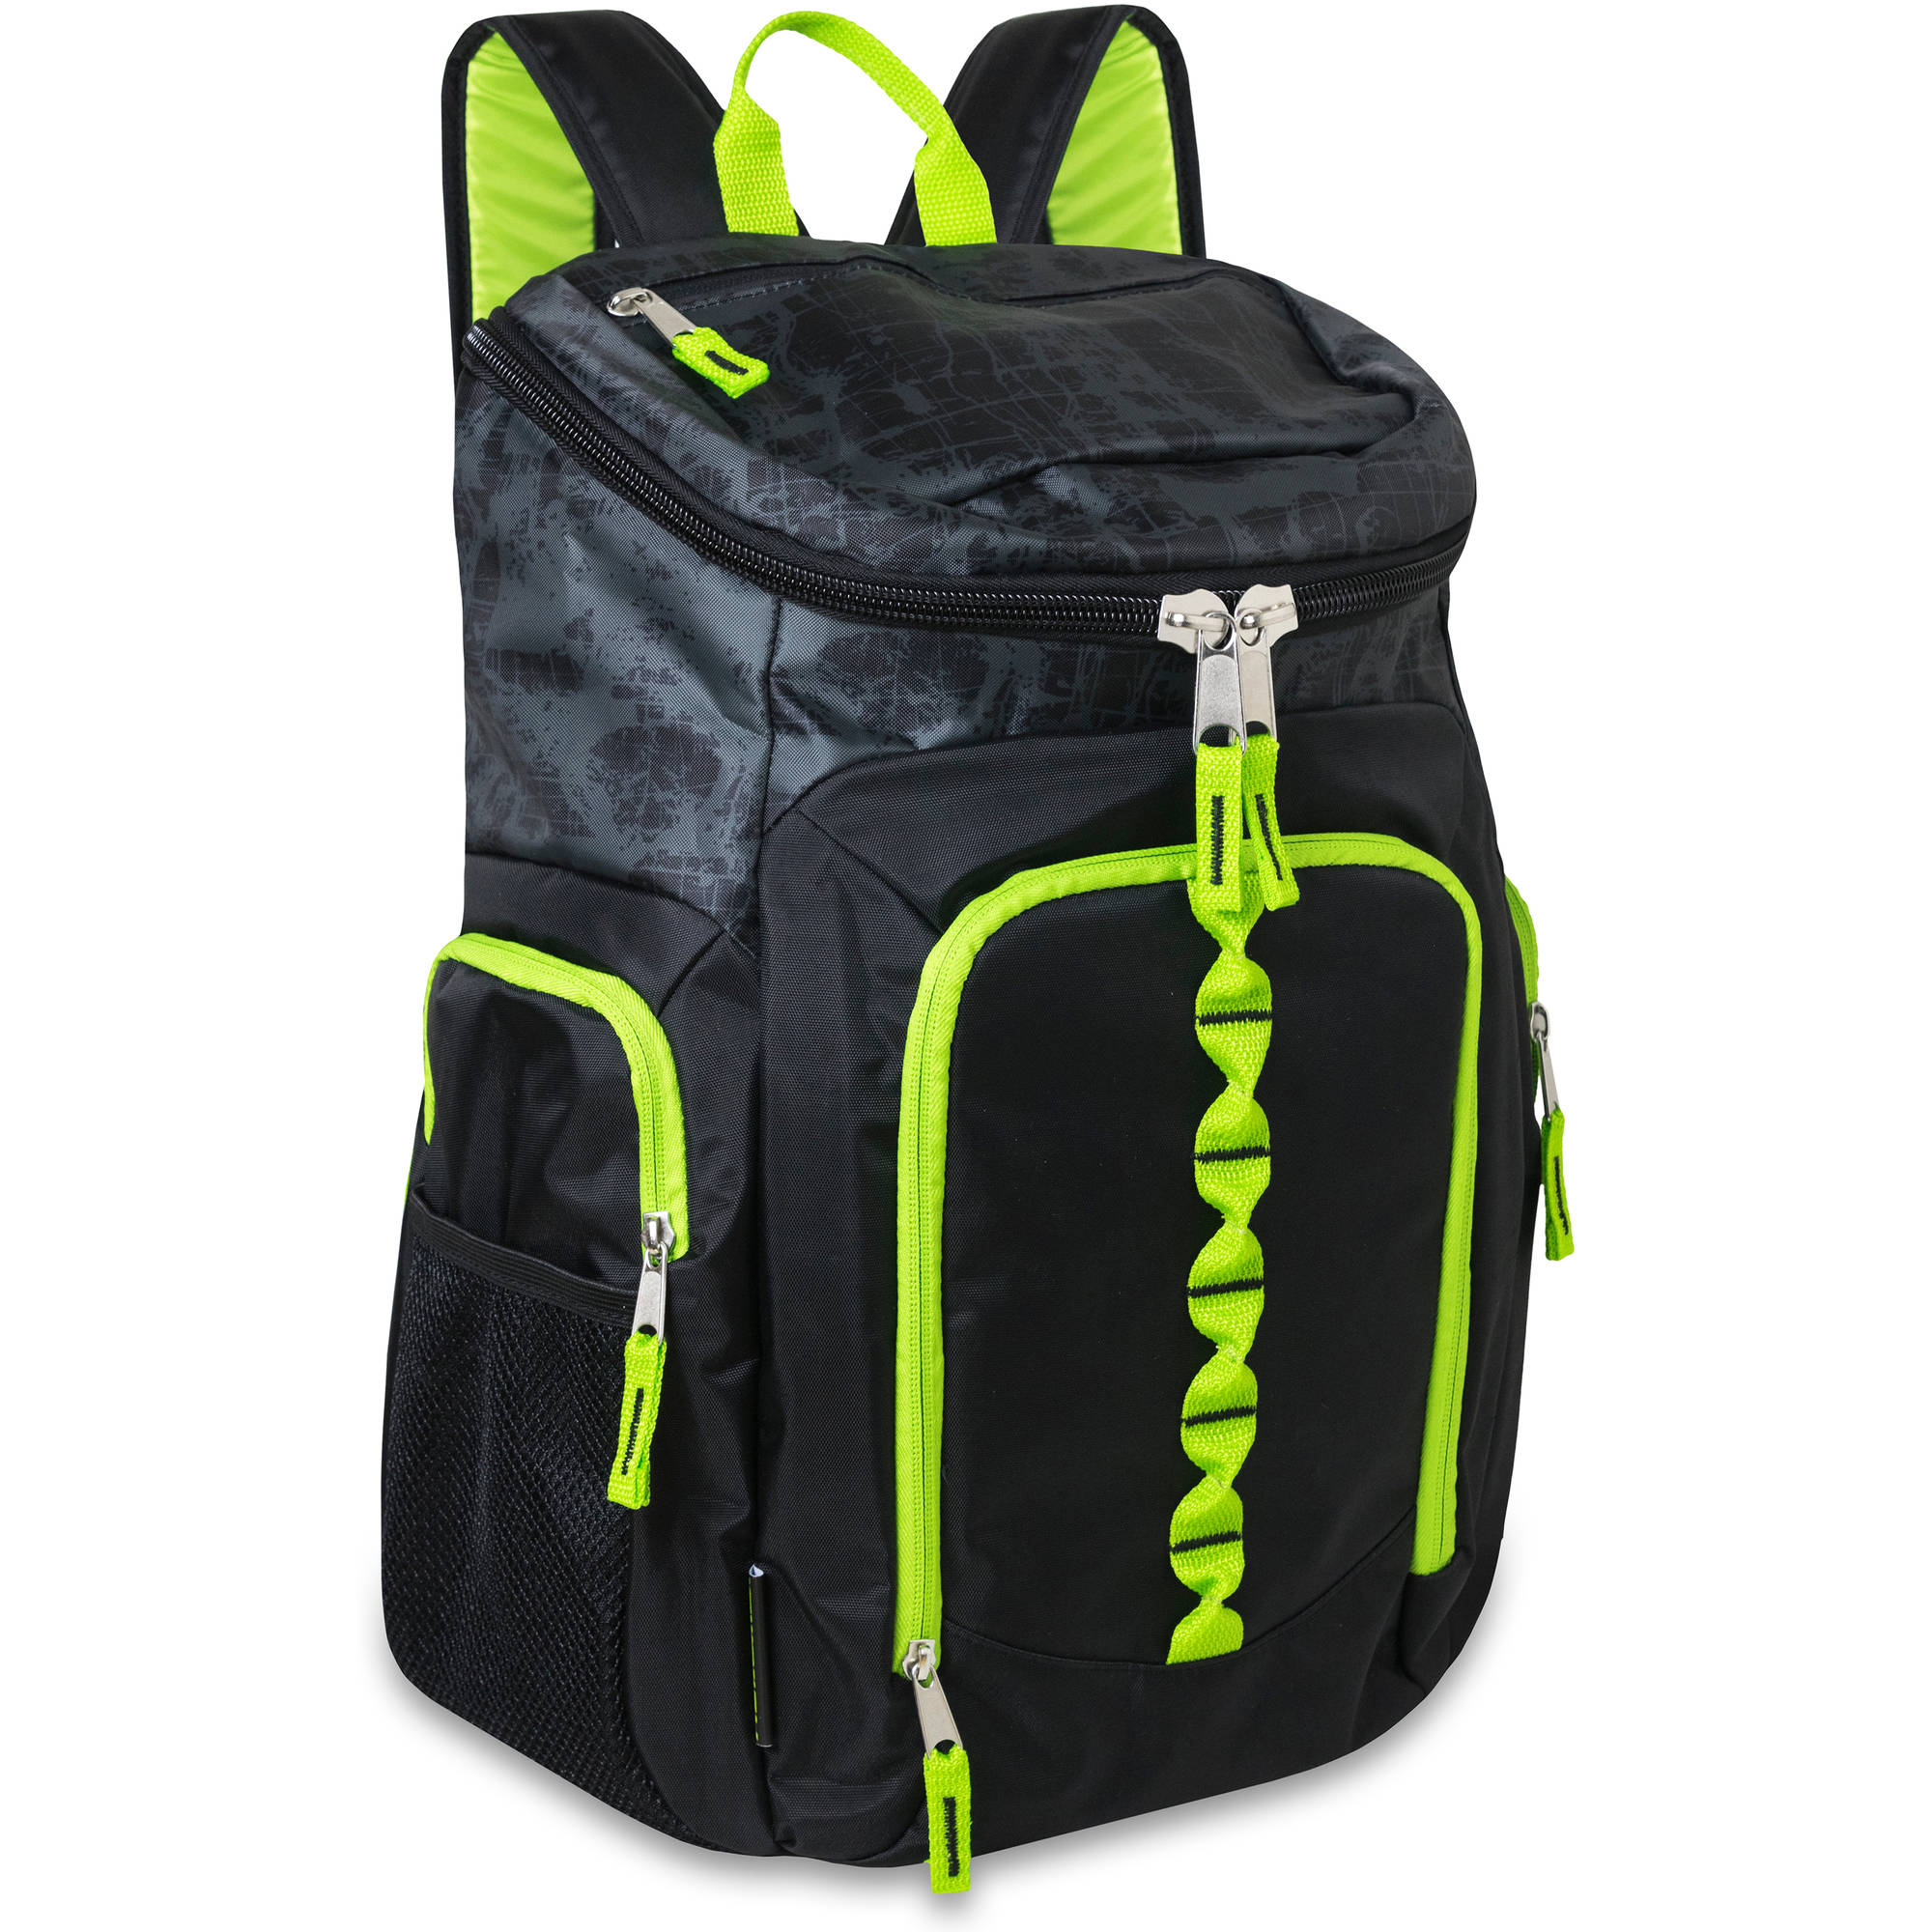 18 Inch Deluxe Top Zip Backpack with Double Side Pockets